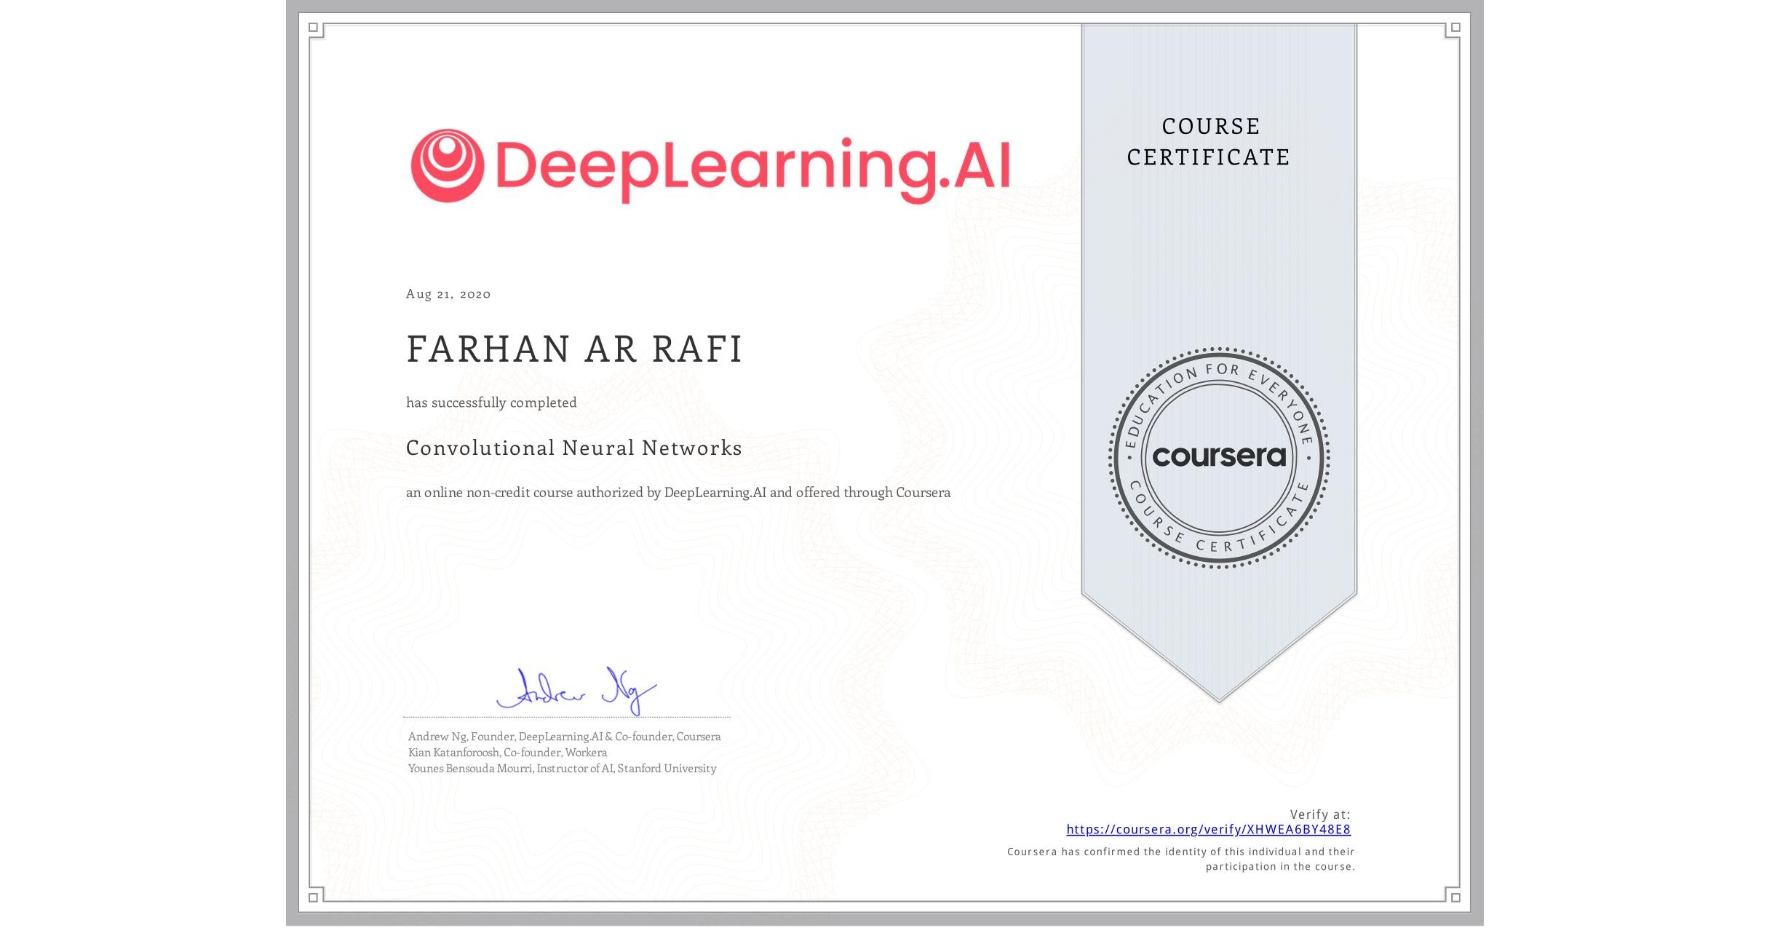 View certificate for FARHAN AR  RAFI, Convolutional Neural Networks, an online non-credit course authorized by DeepLearning.AI and offered through Coursera